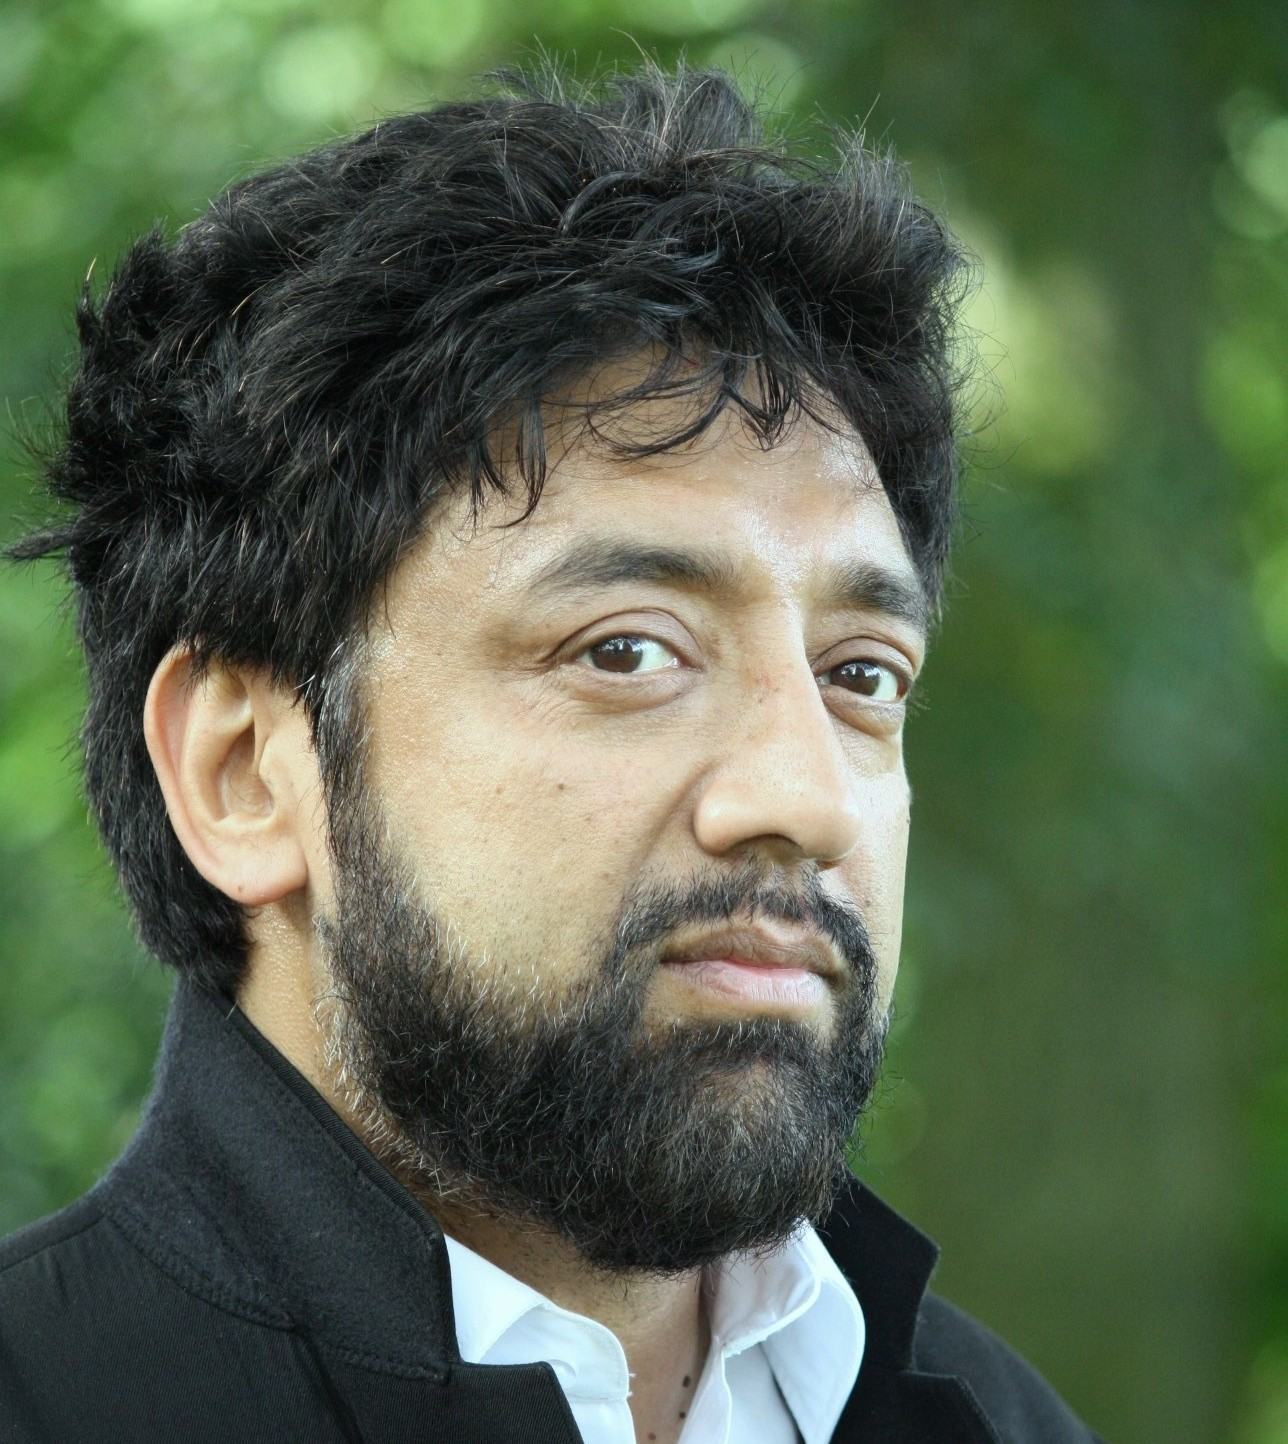 Professor Salman Sayyid - Salman Sayyid is the Professor of Social Theory and Decolonial Thought. Head of School of Sociology and Social Policy, University of Leeds. He has authored many articles and books including Recalling the Caliphate and A Fundamental Fear.